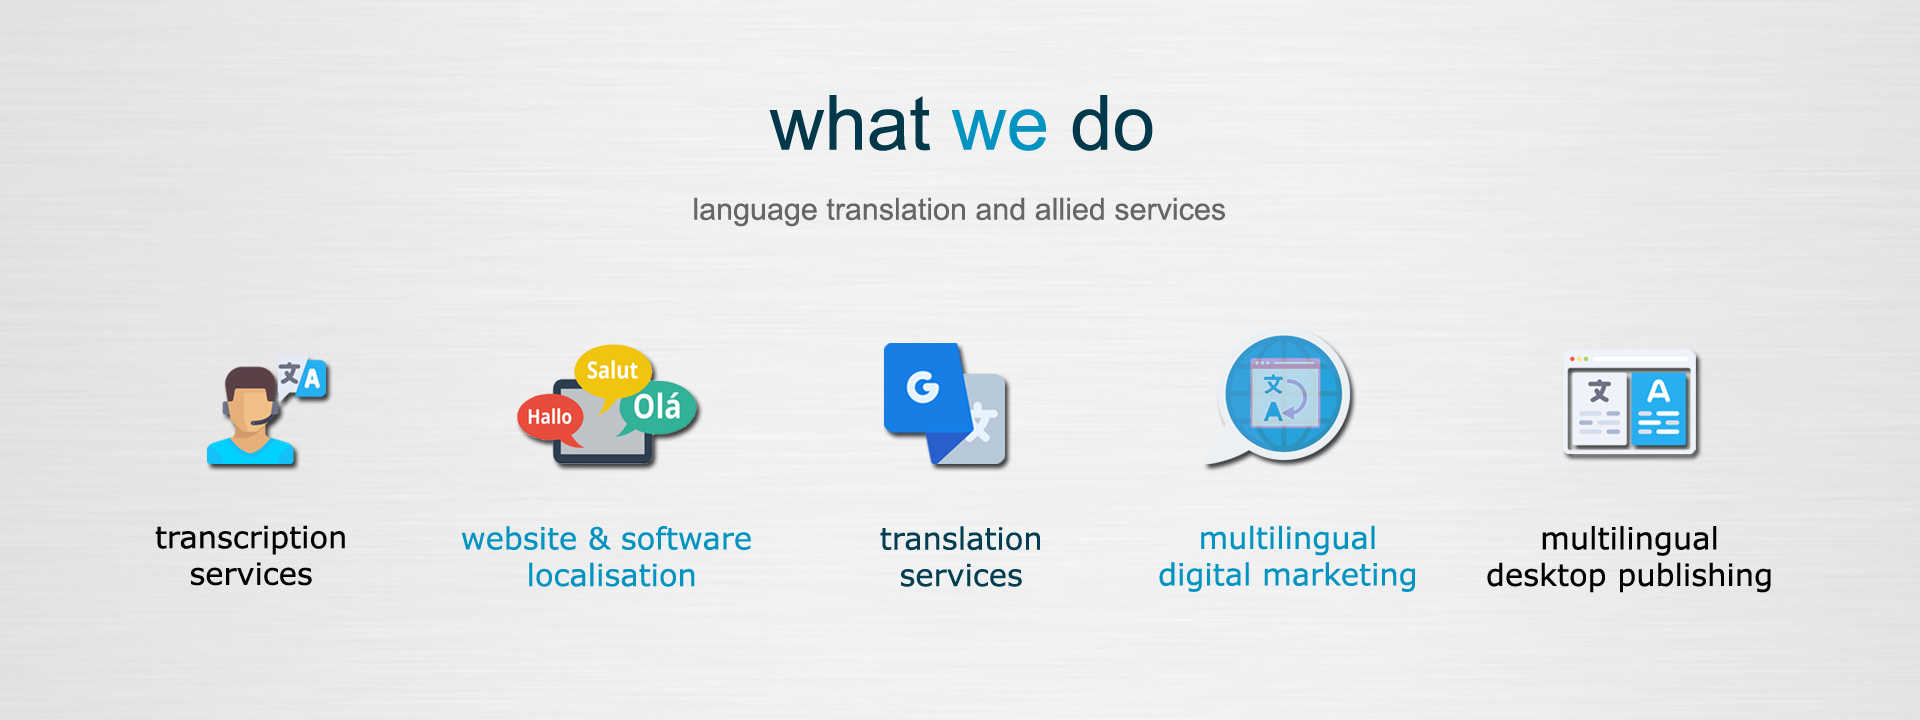 What we do? Translation